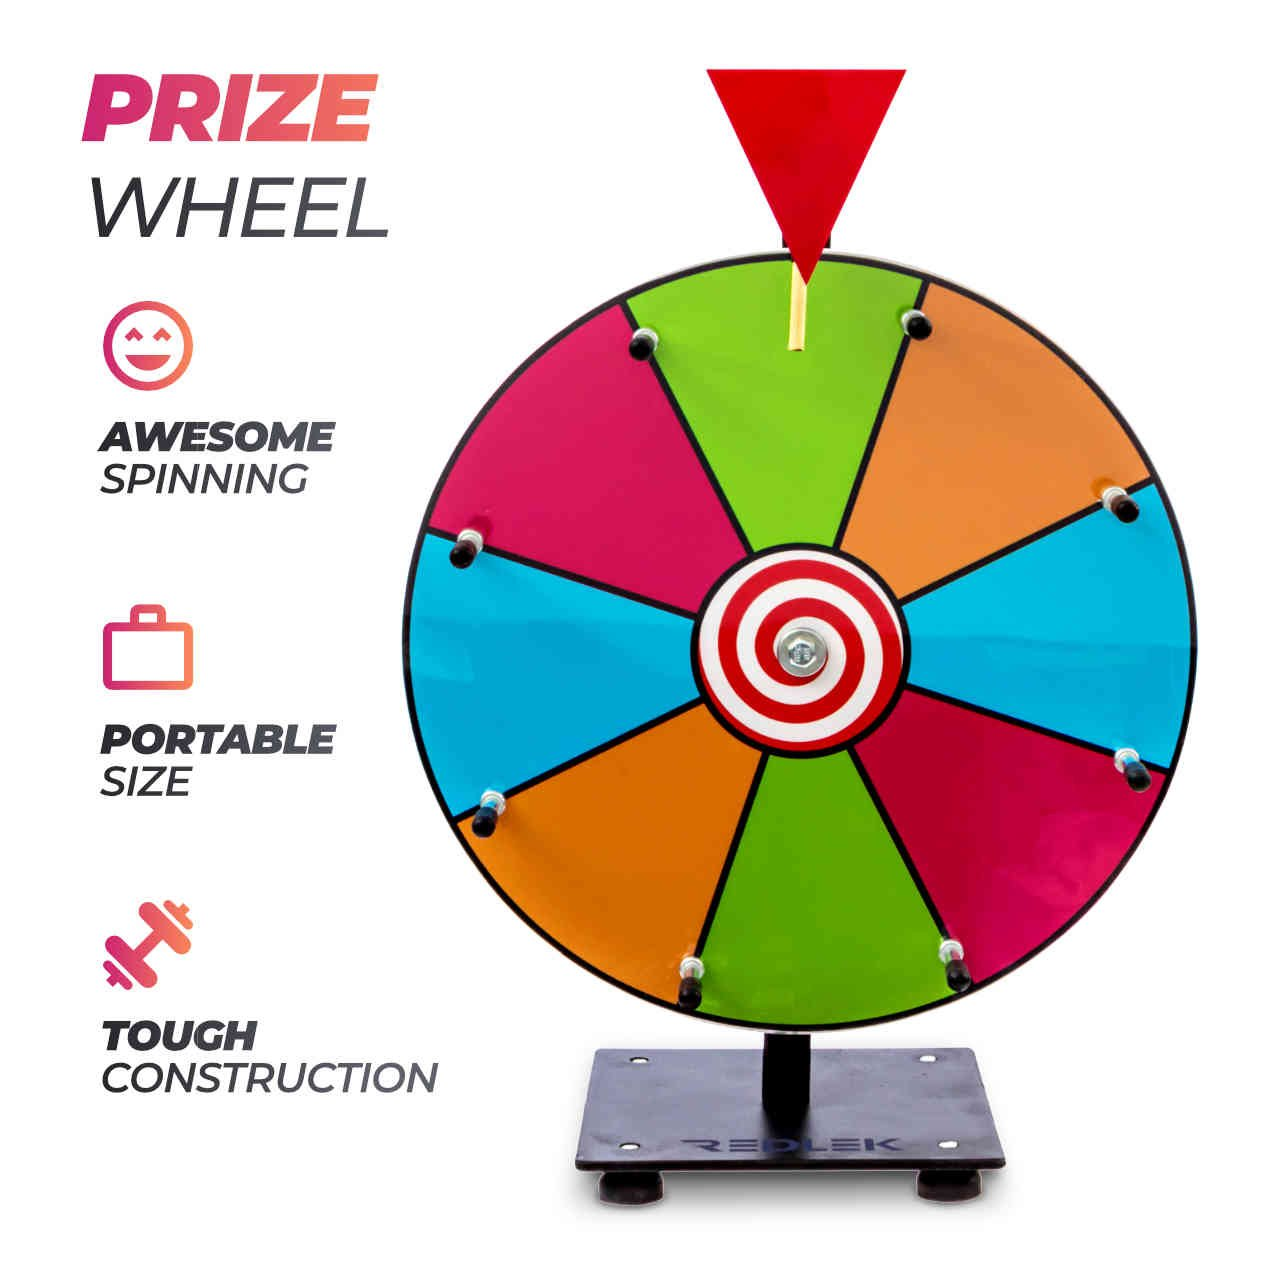 """Redlek Spinning Prize Wheel – Small 12"""" Spinning Tabletop Color Prize Wheel 